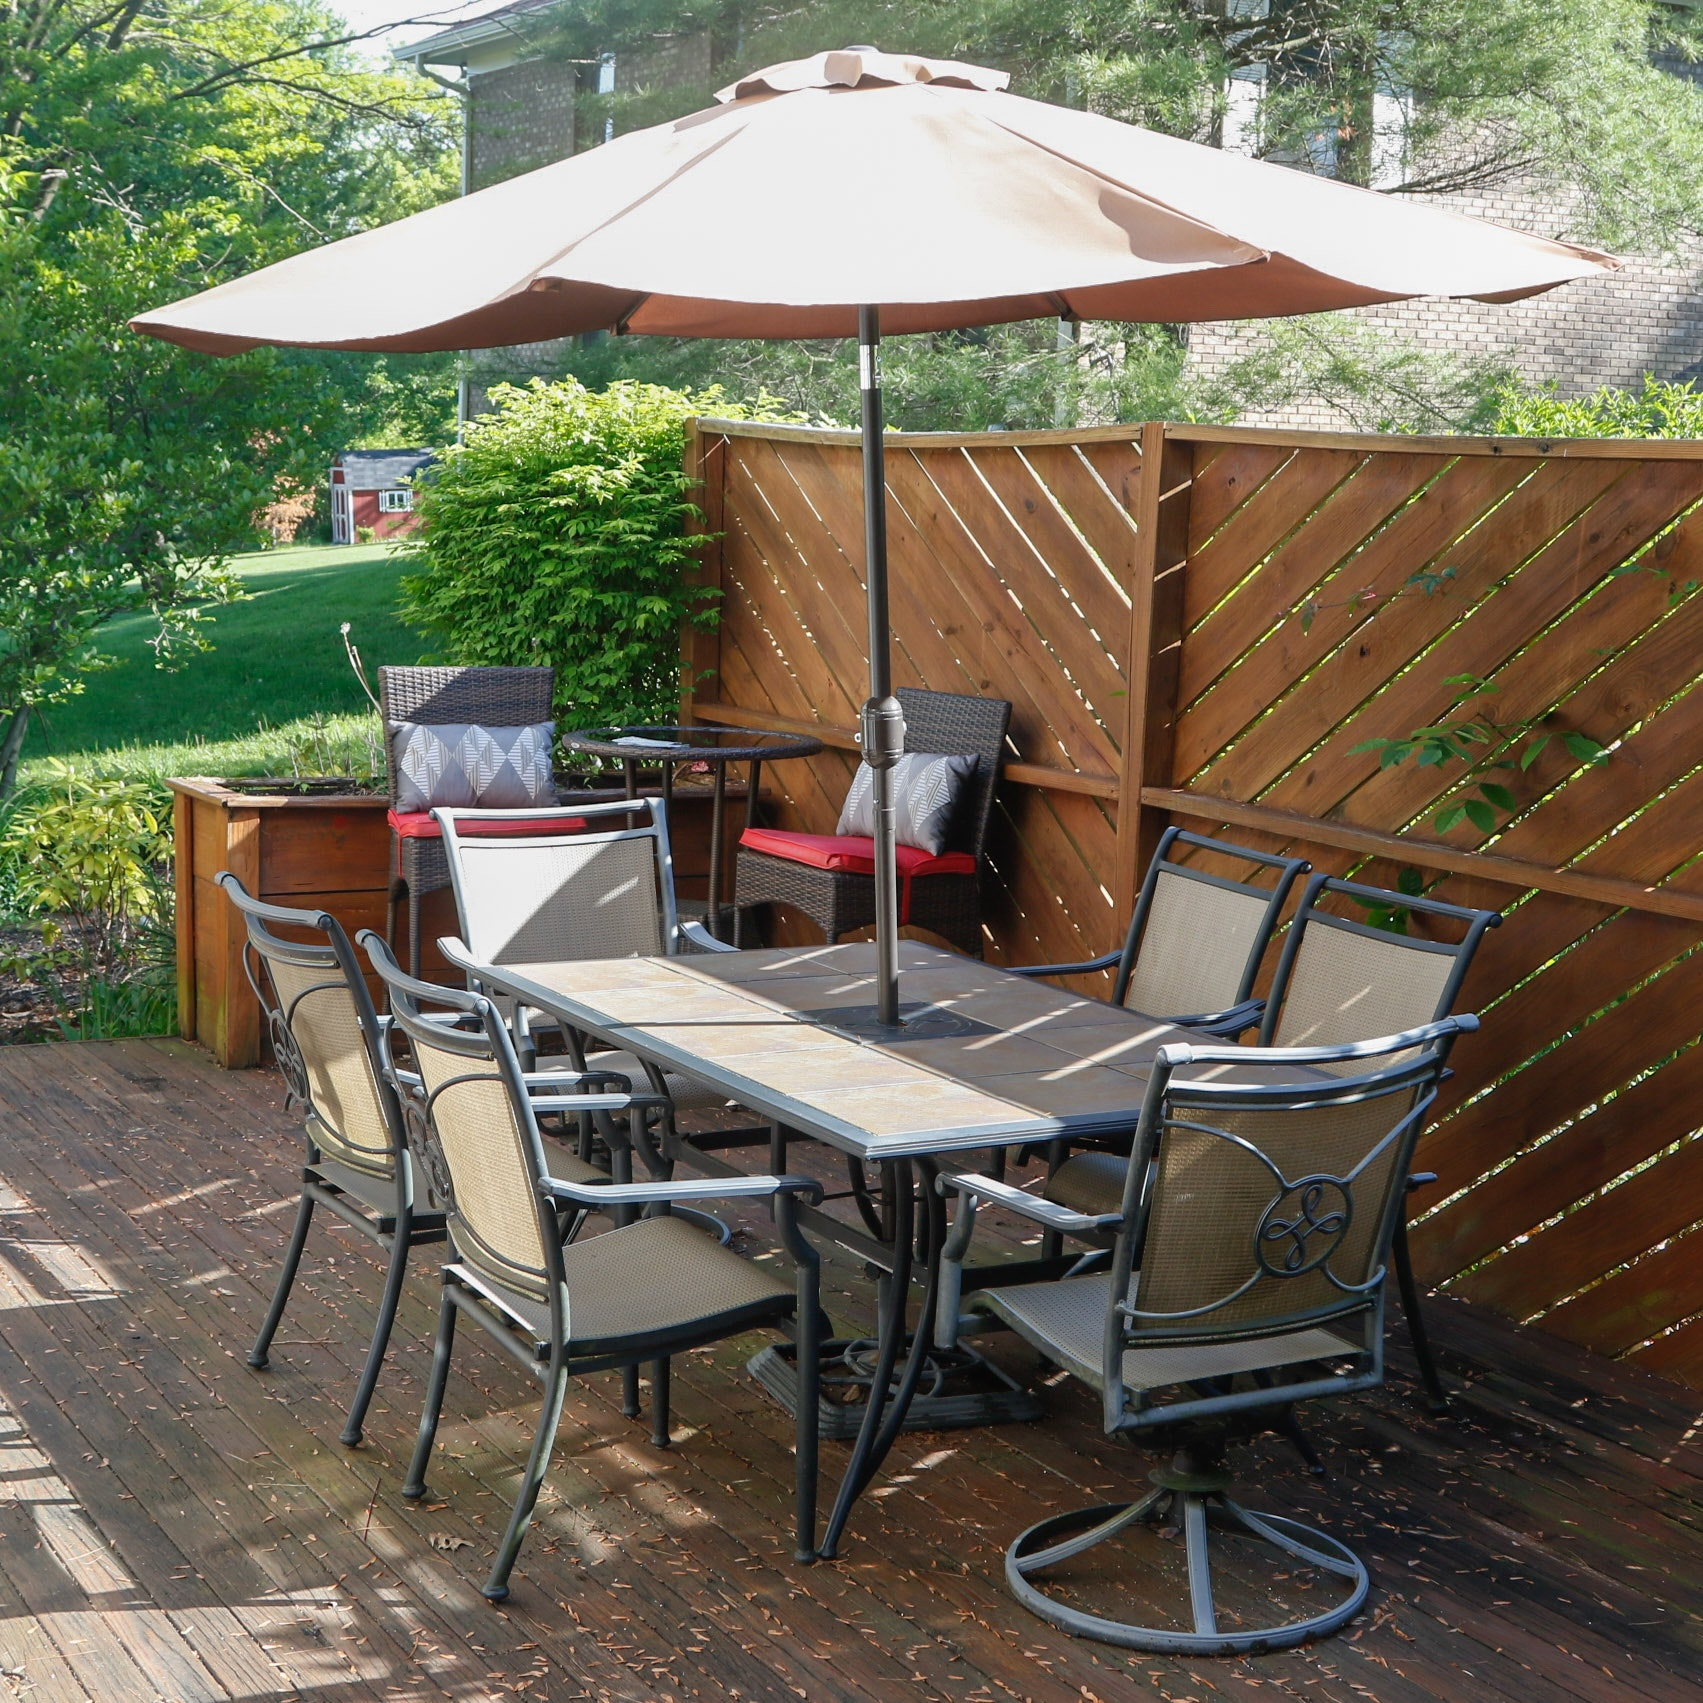 Ceramic Tile Top Patio Dining Table And Chairs With Umbrella ...